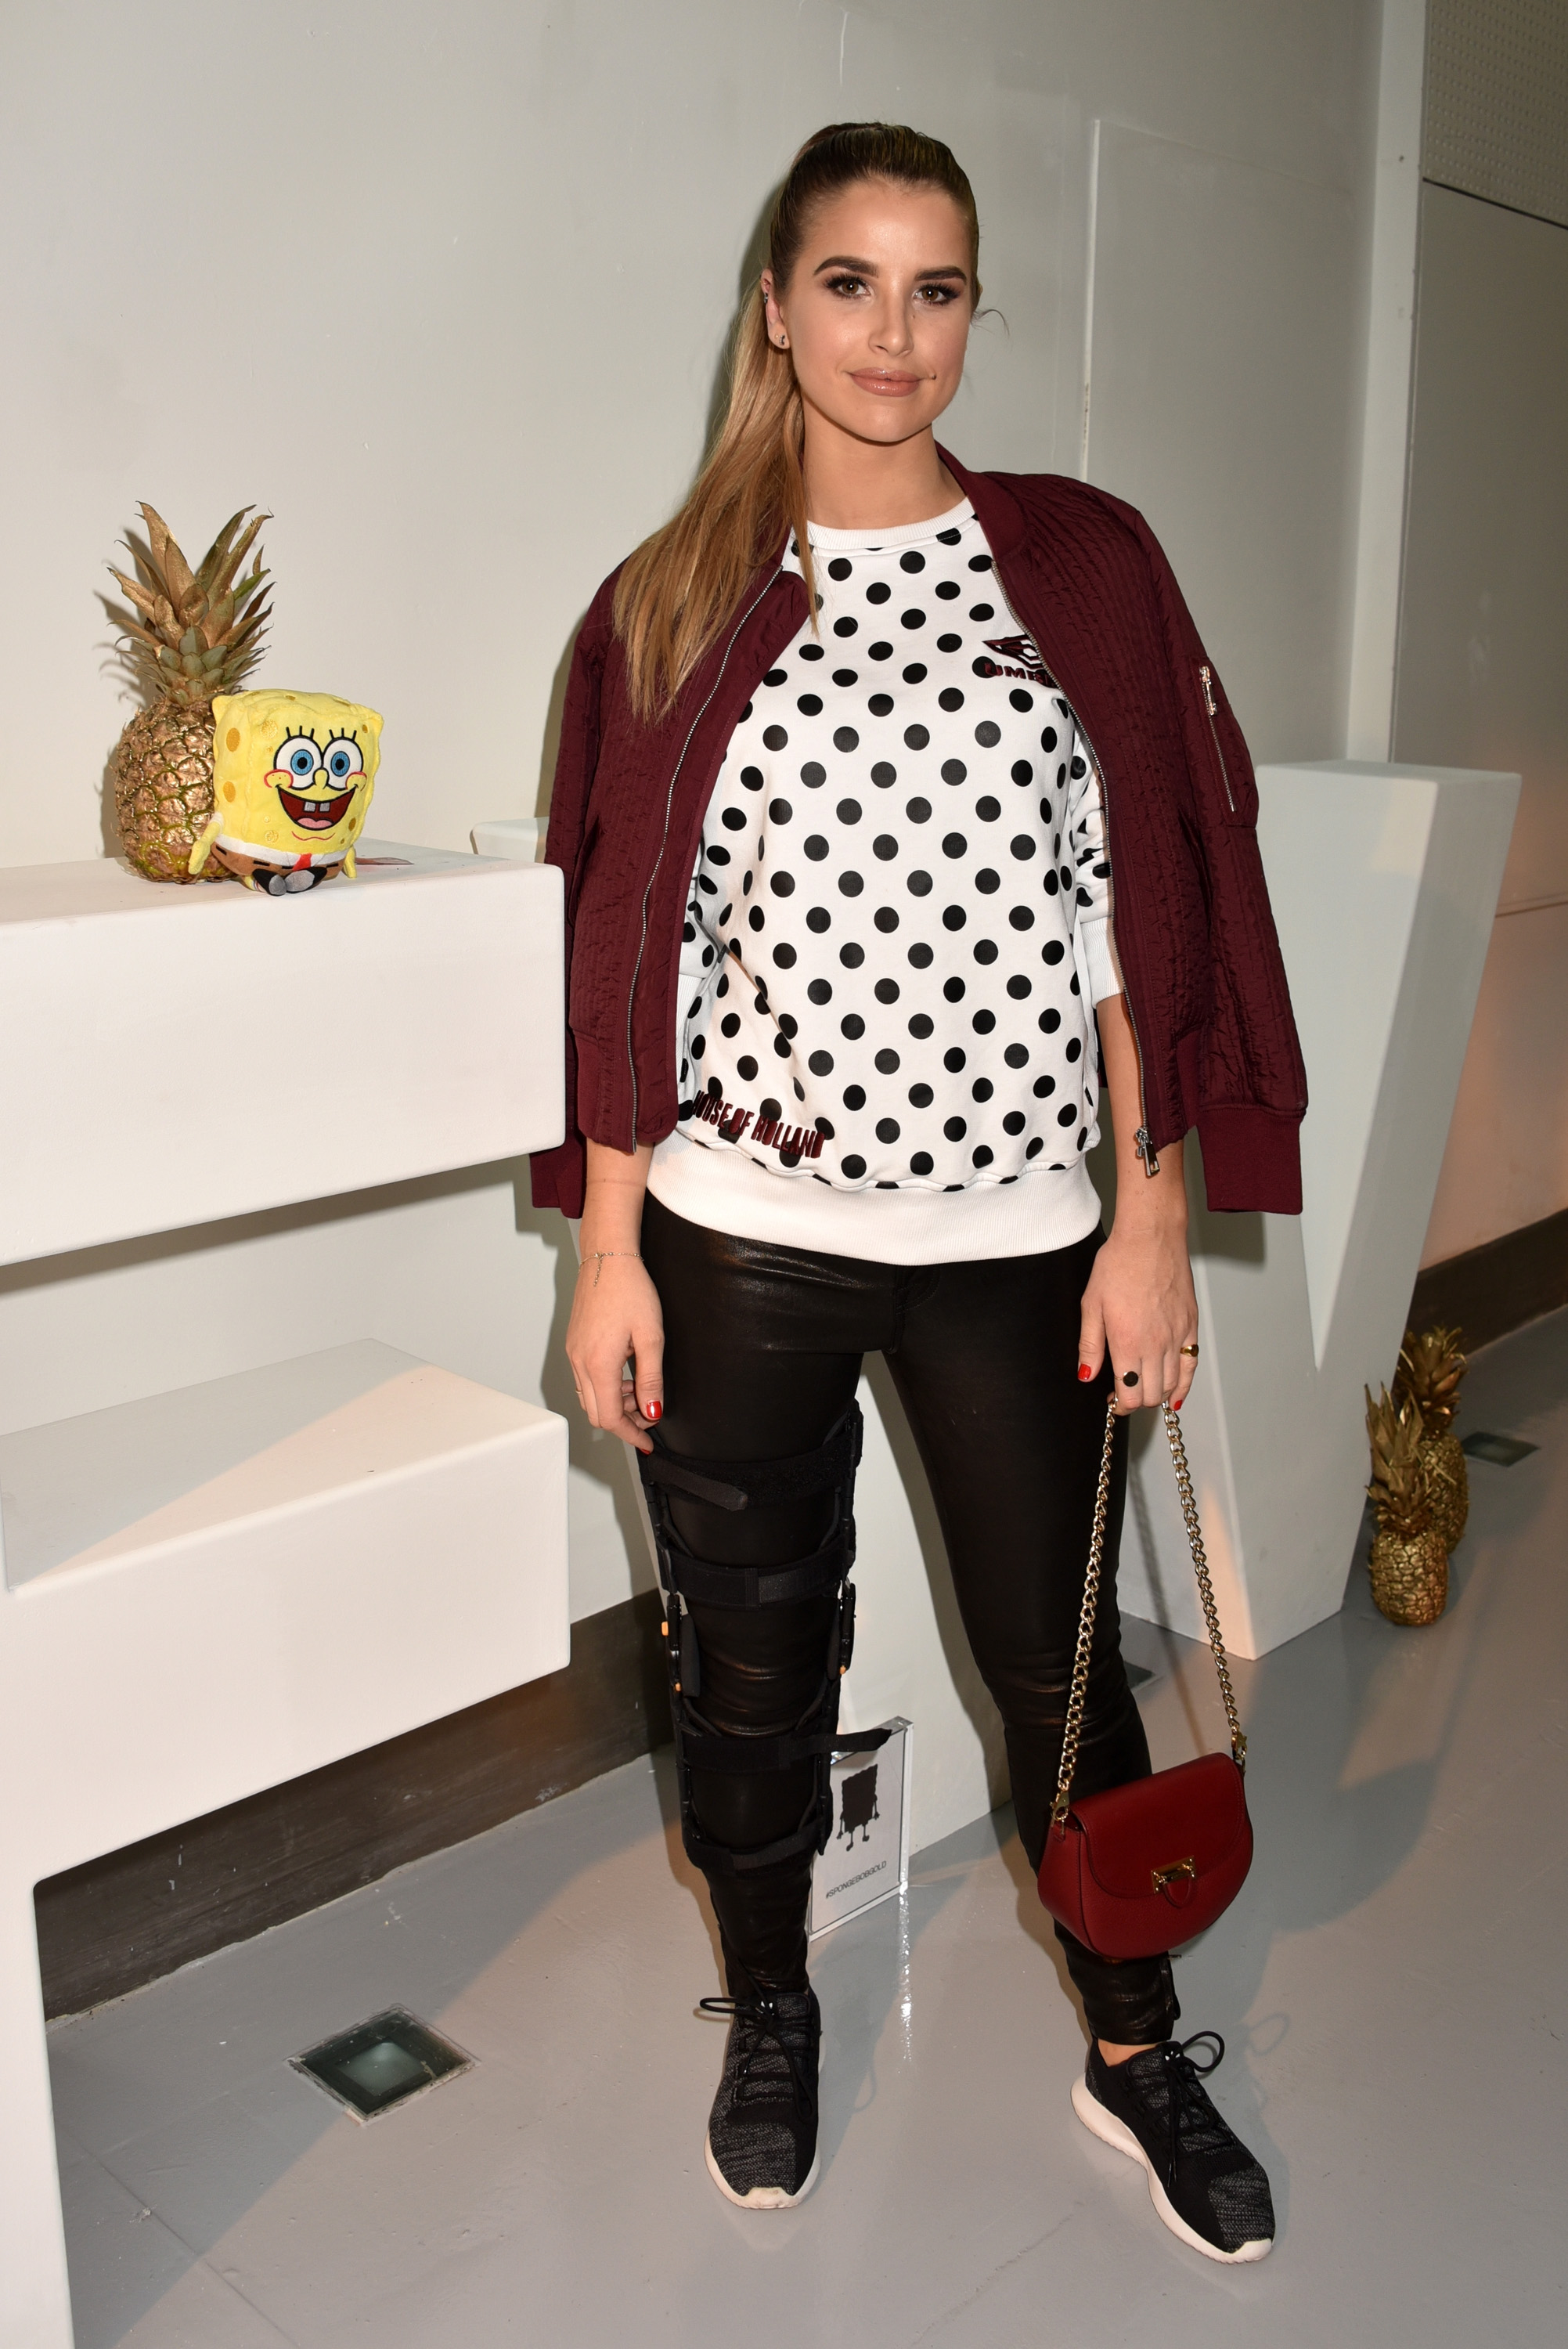 Vogue Williams attends Sponge Bob Gold